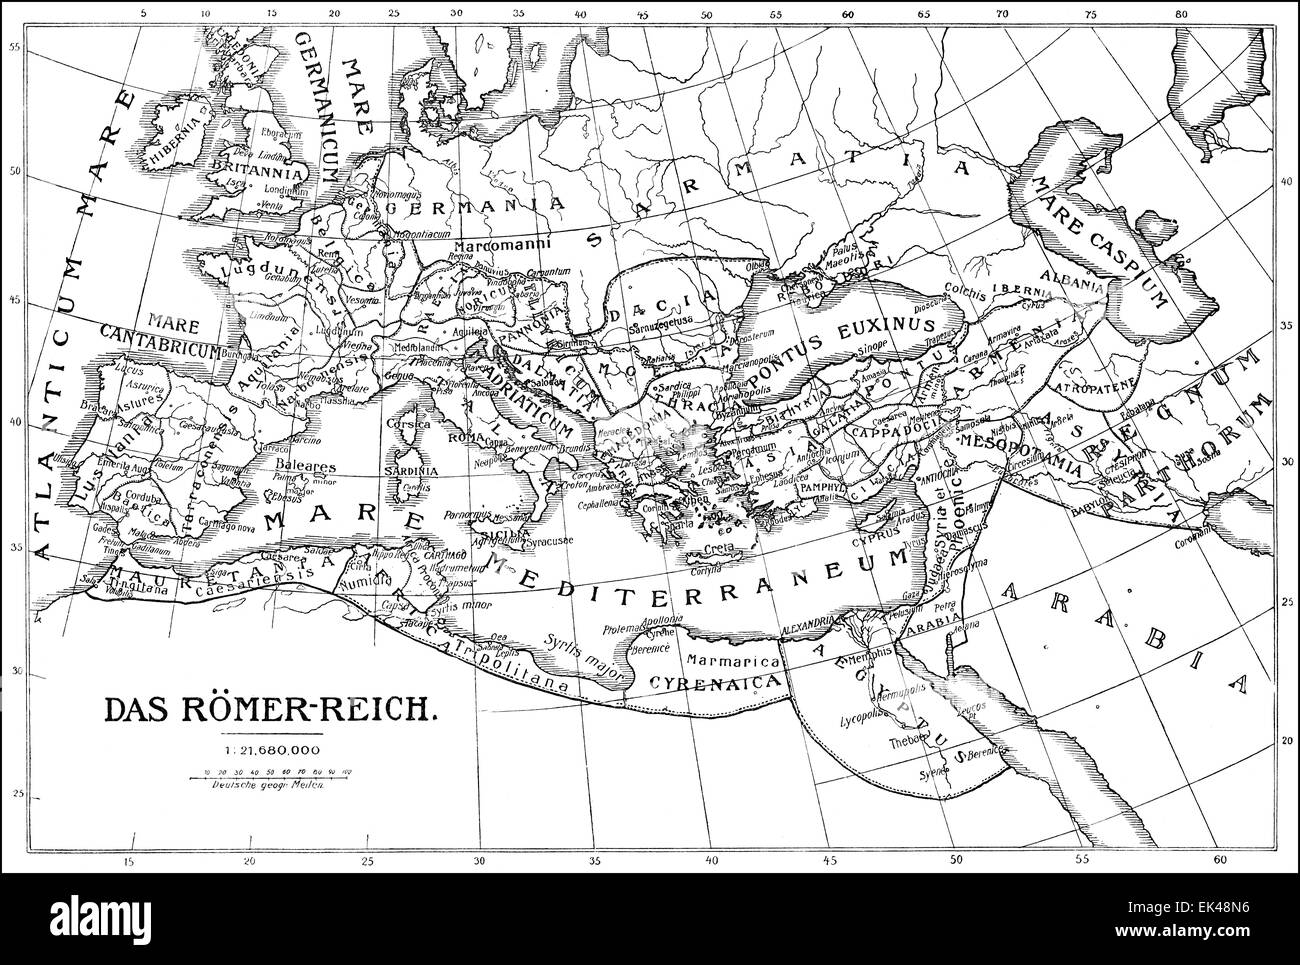 Historical map of the Roman Empire, - Stock Image